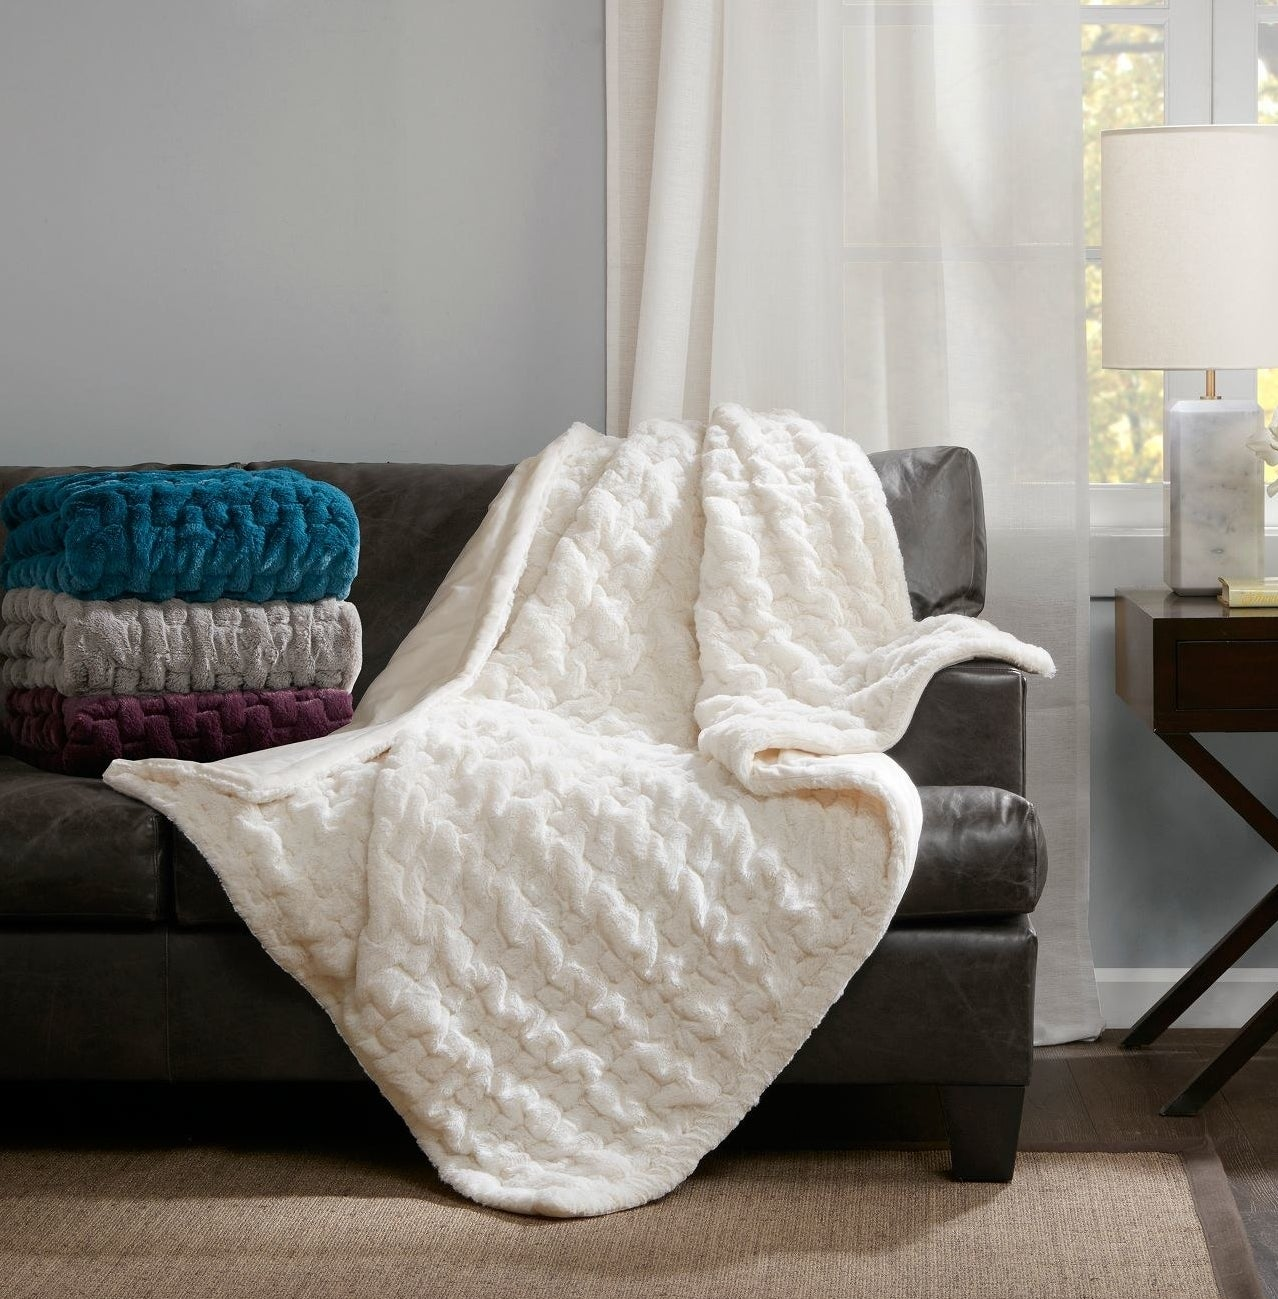 A white throw blanket spread over a couch